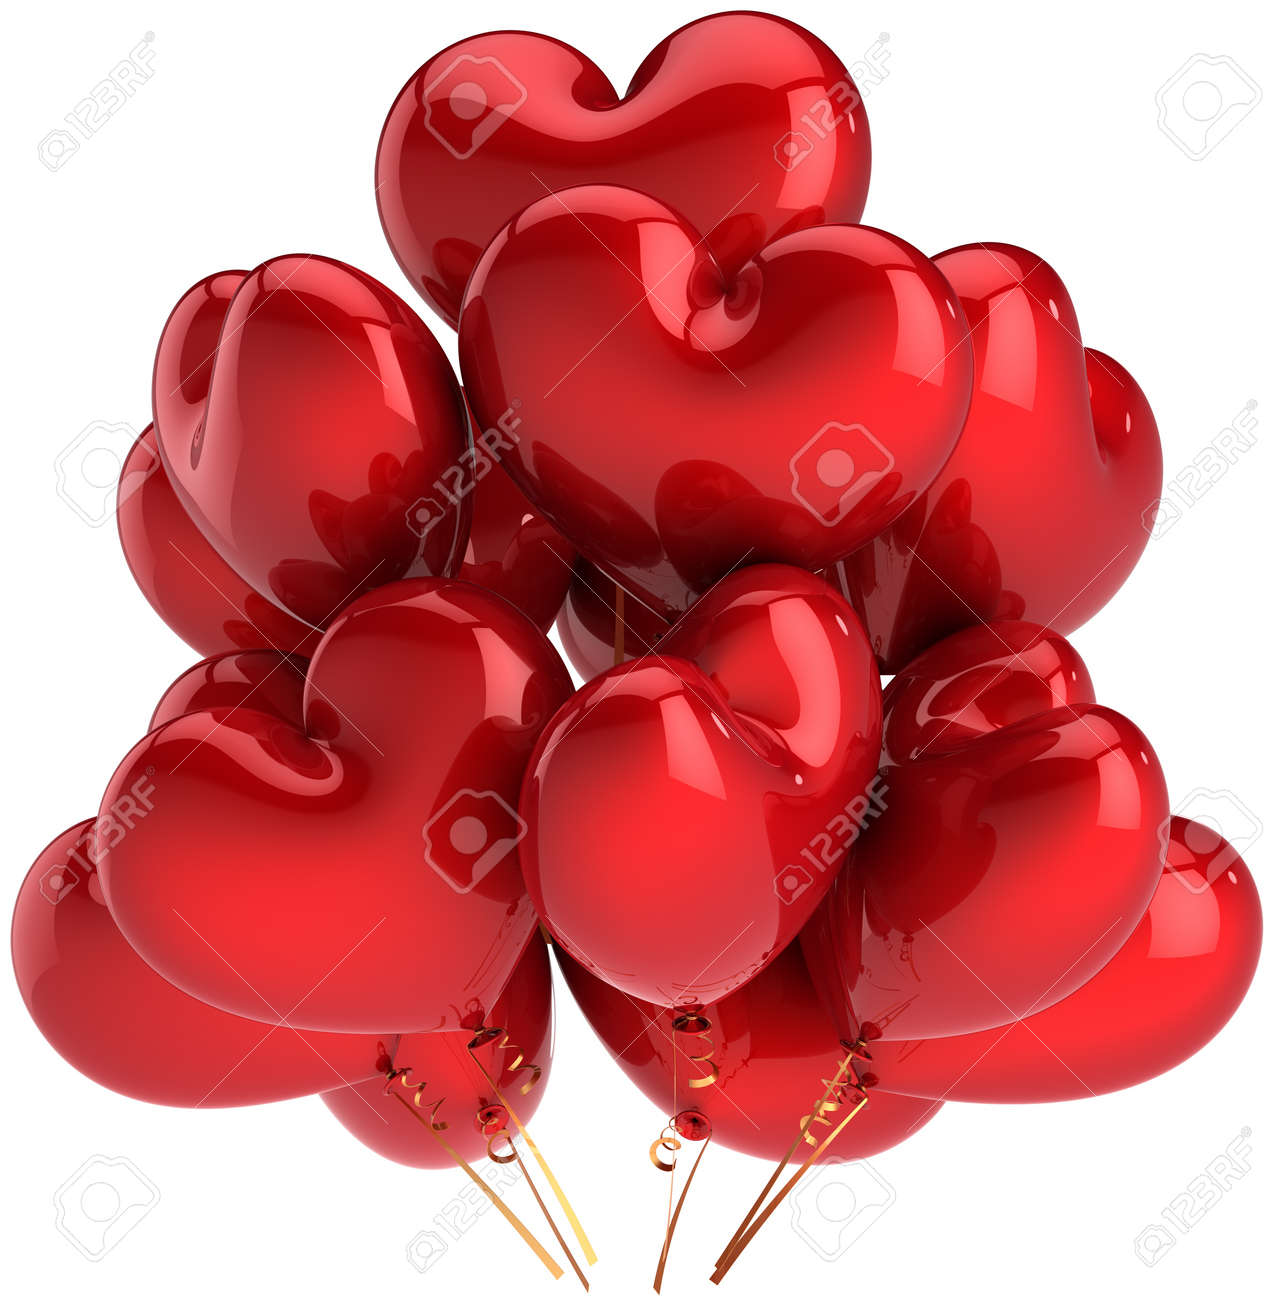 Heart shaped birthday balloons colorful red. Decoration for Love romantic party. Happy married celebration concept. This is a detailed CG three-dimensional 3D render. Isolated on white background Stock Photo - 9546196